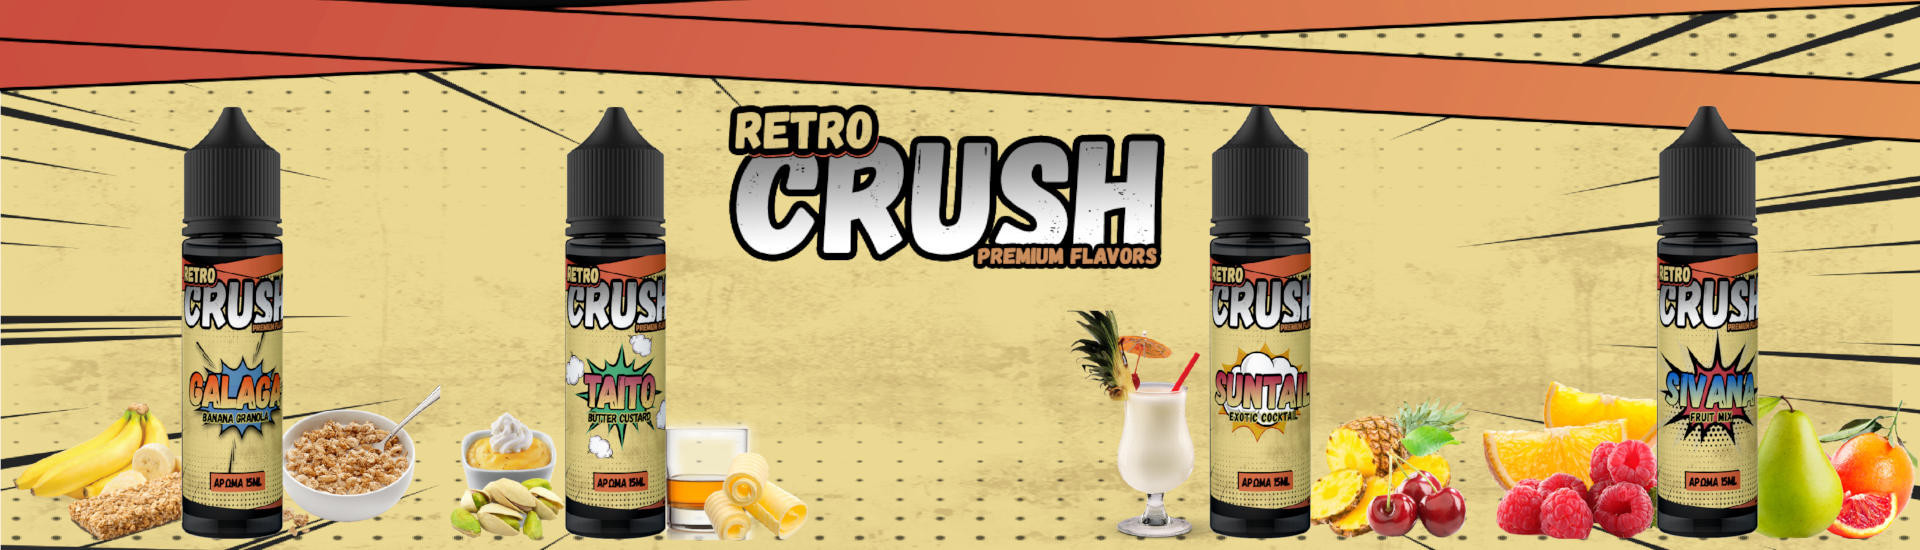 Retro Crush Flavorshots